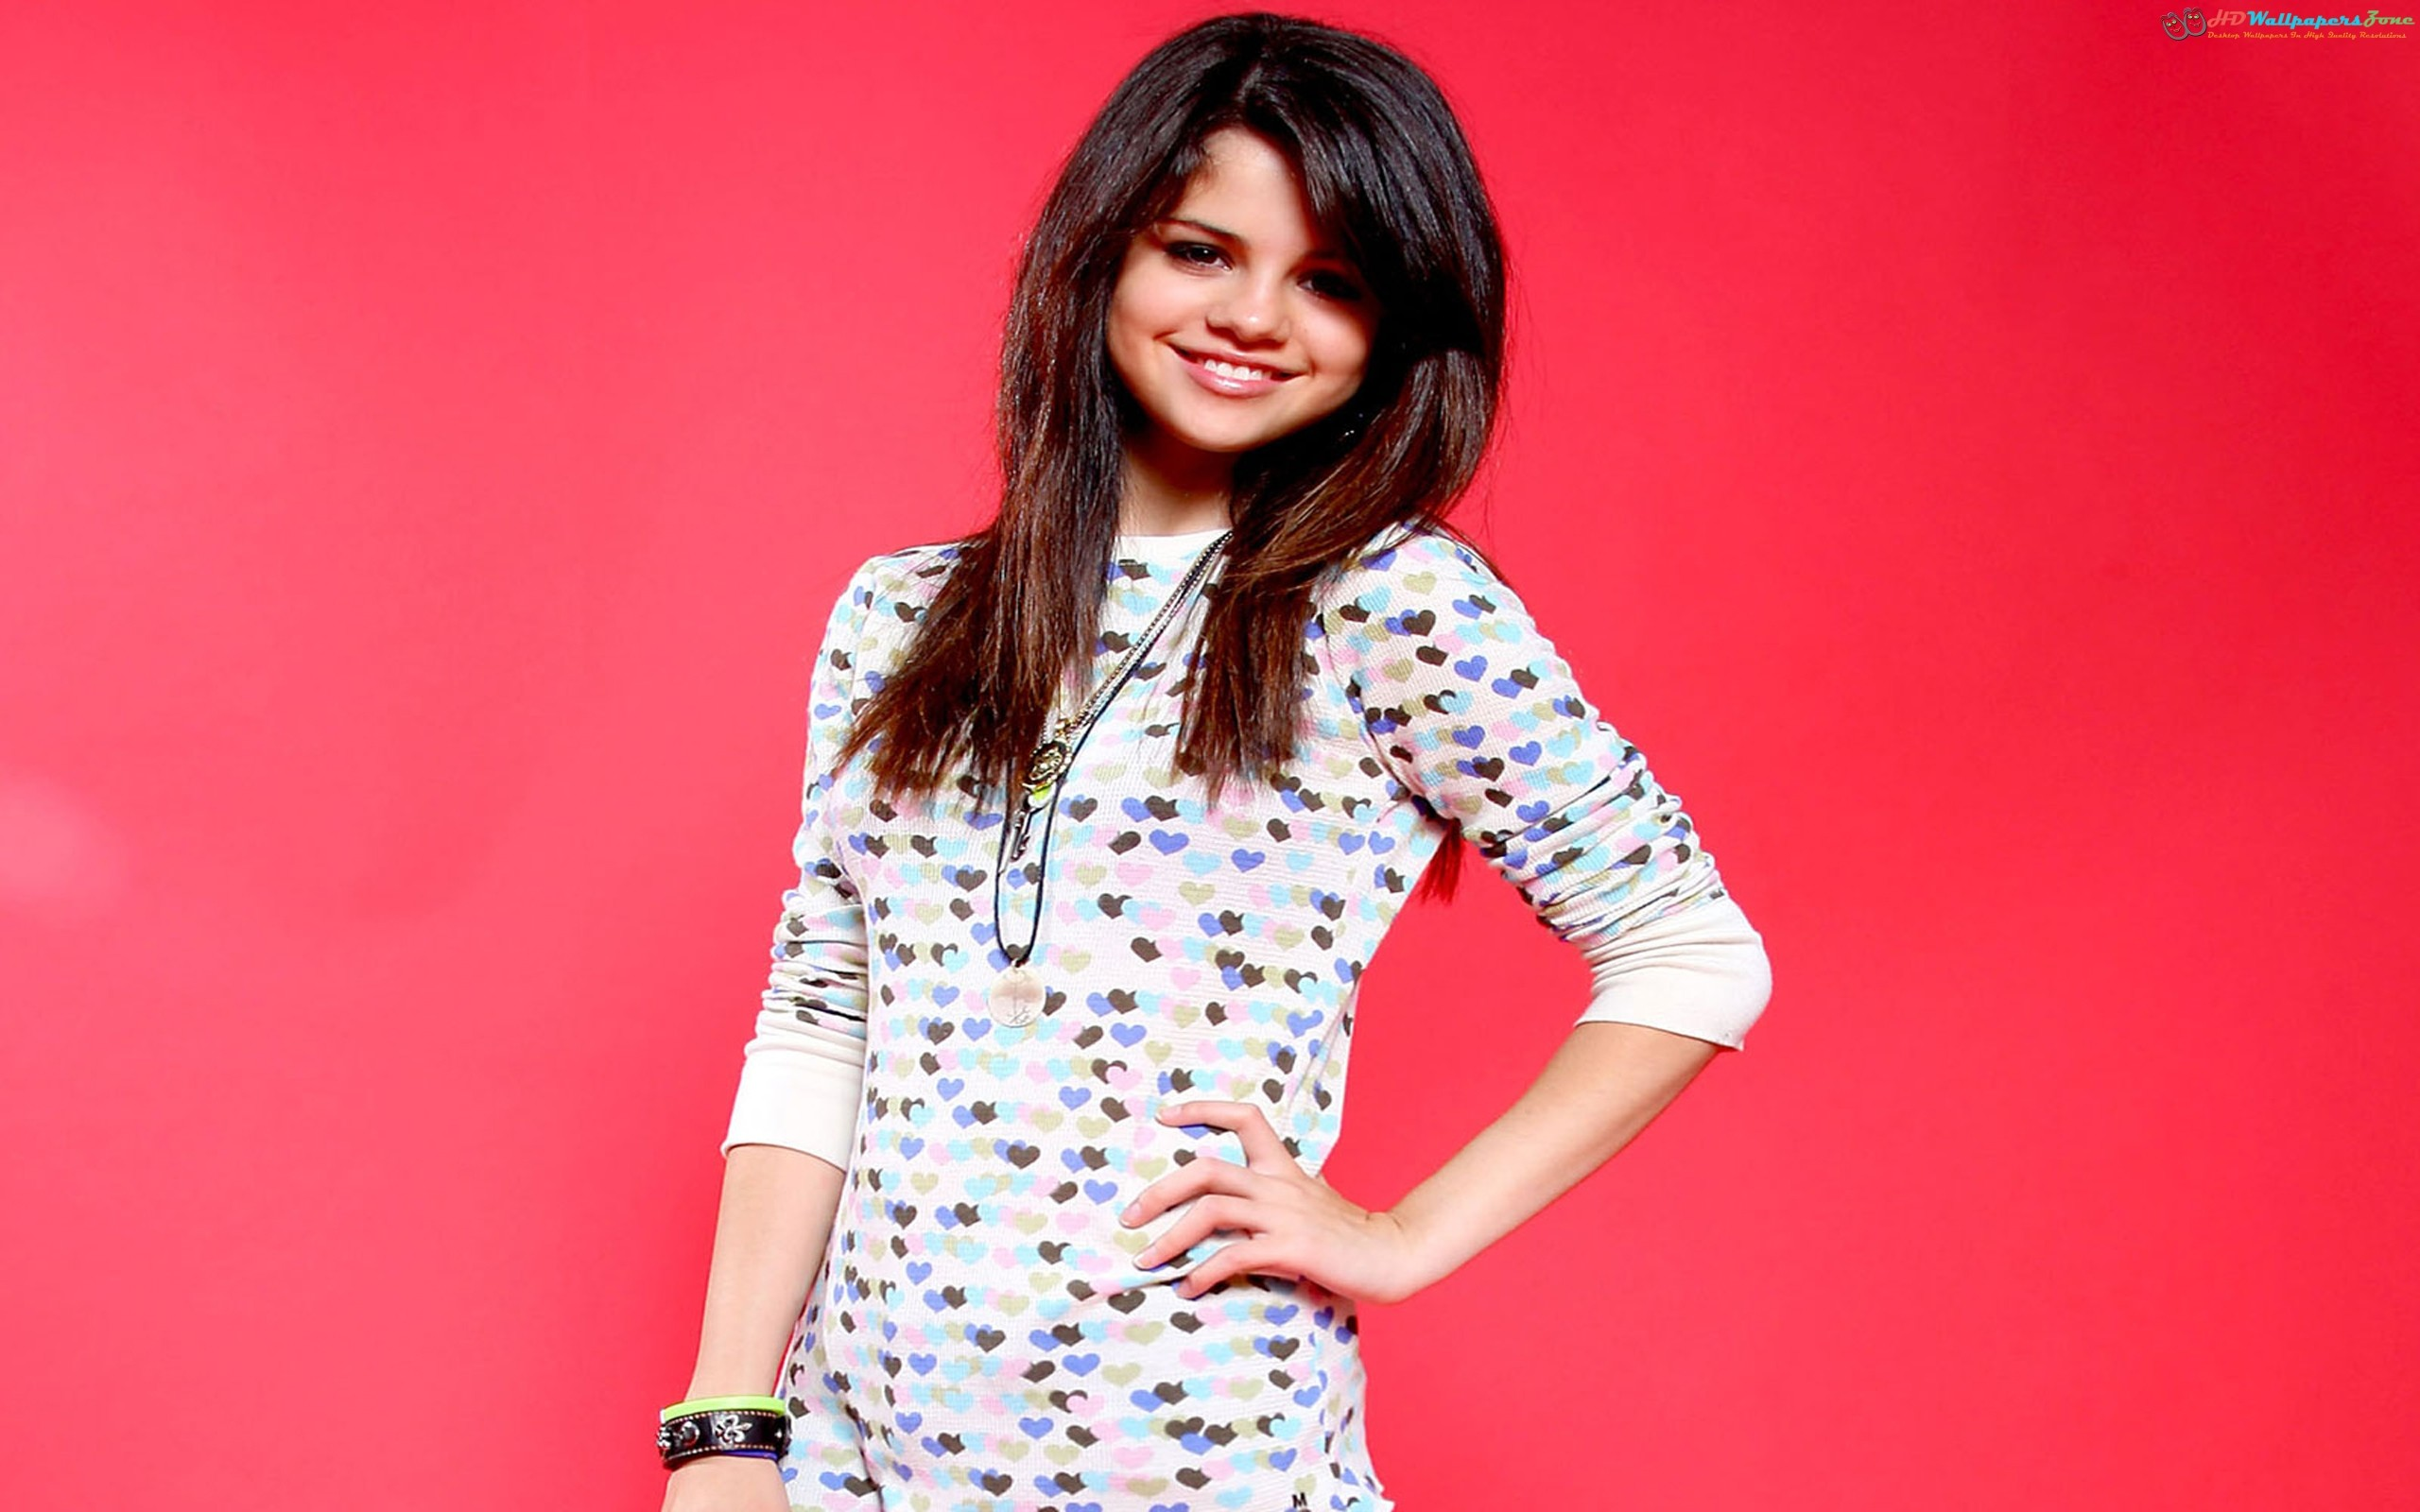 2560x1600 Selena Gomez Cute HD Wallpaper #1 only at http://www.hdwallpaperszone